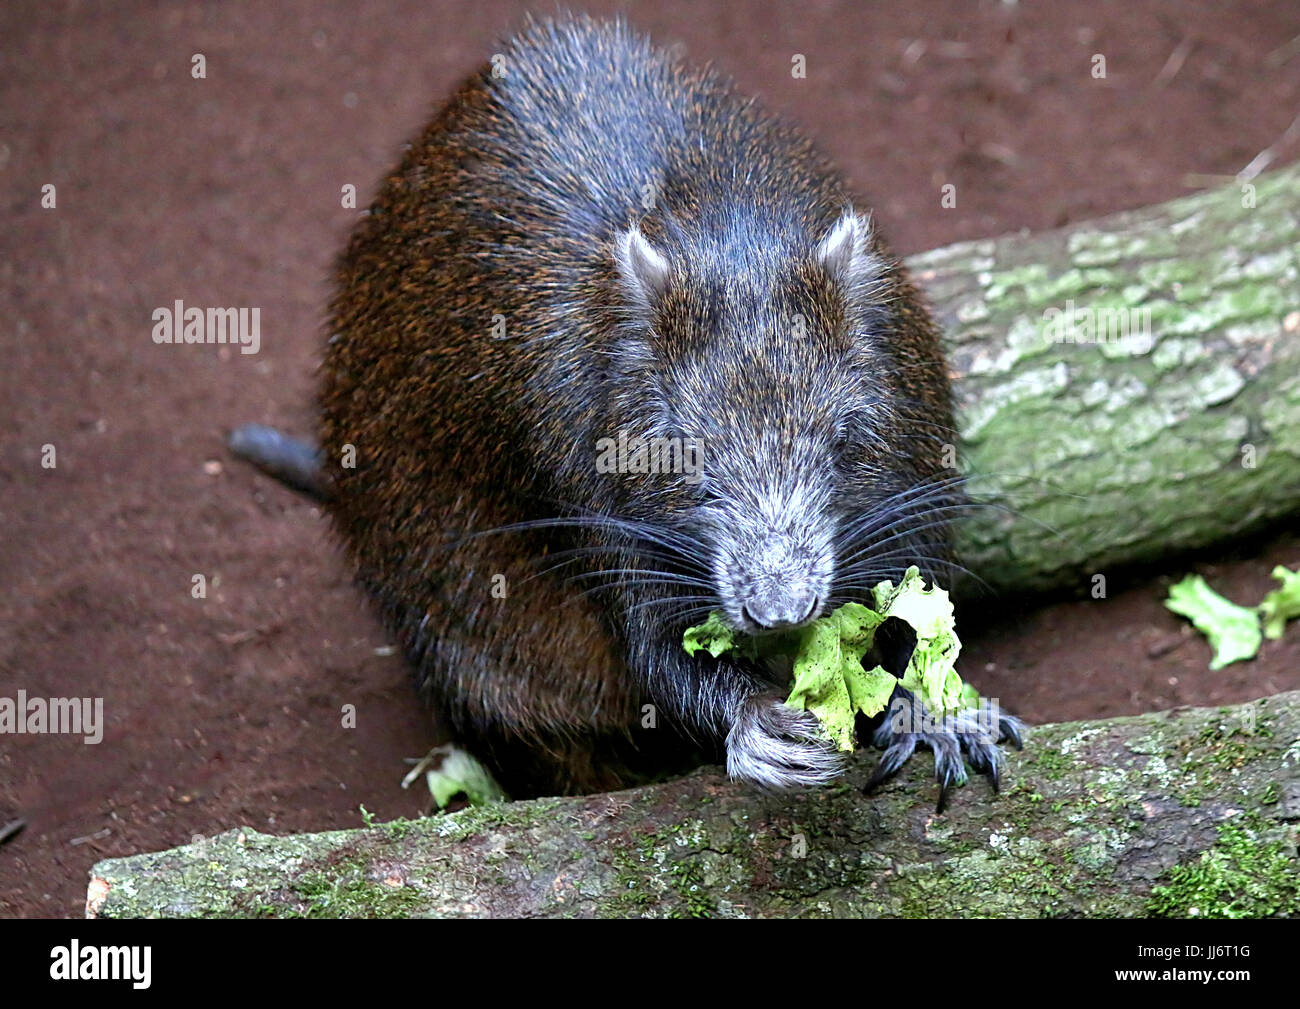 Cuban or Desmarest's Hutia (Capromys pilorides) feeding, using front paws. - Stock Image